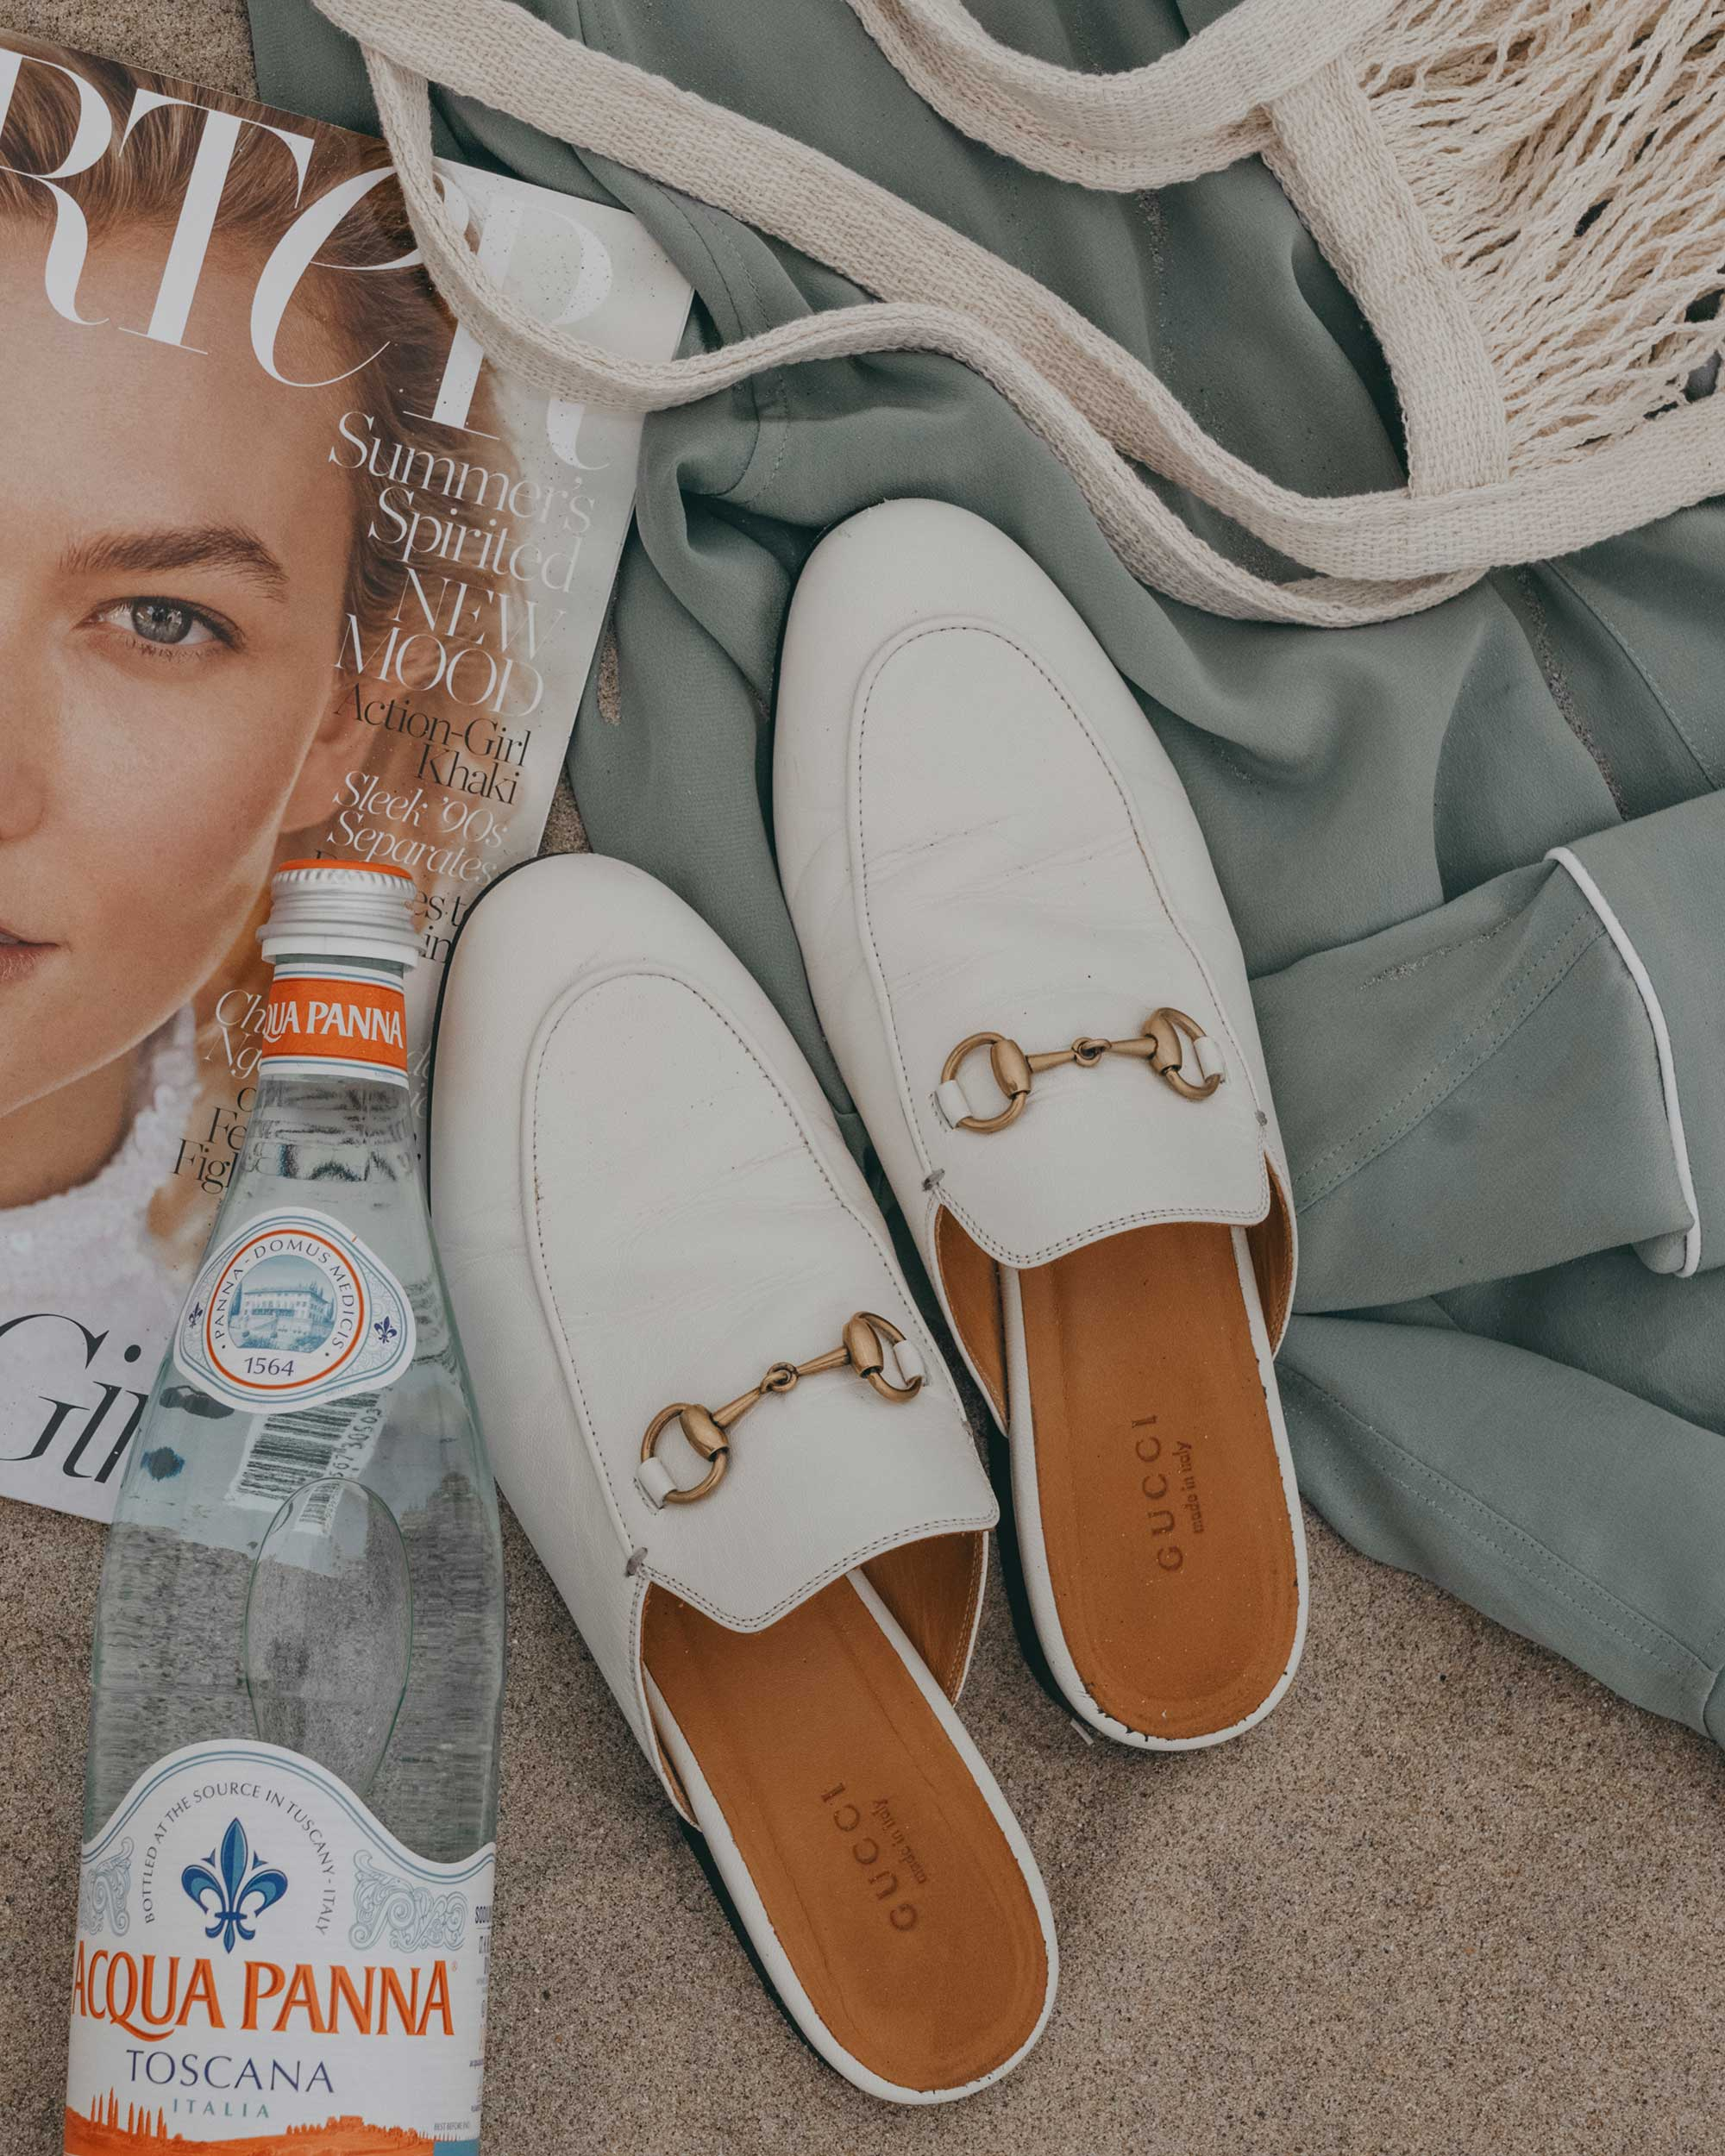 Gucci Princetown Leather Slipper in White3.jpg